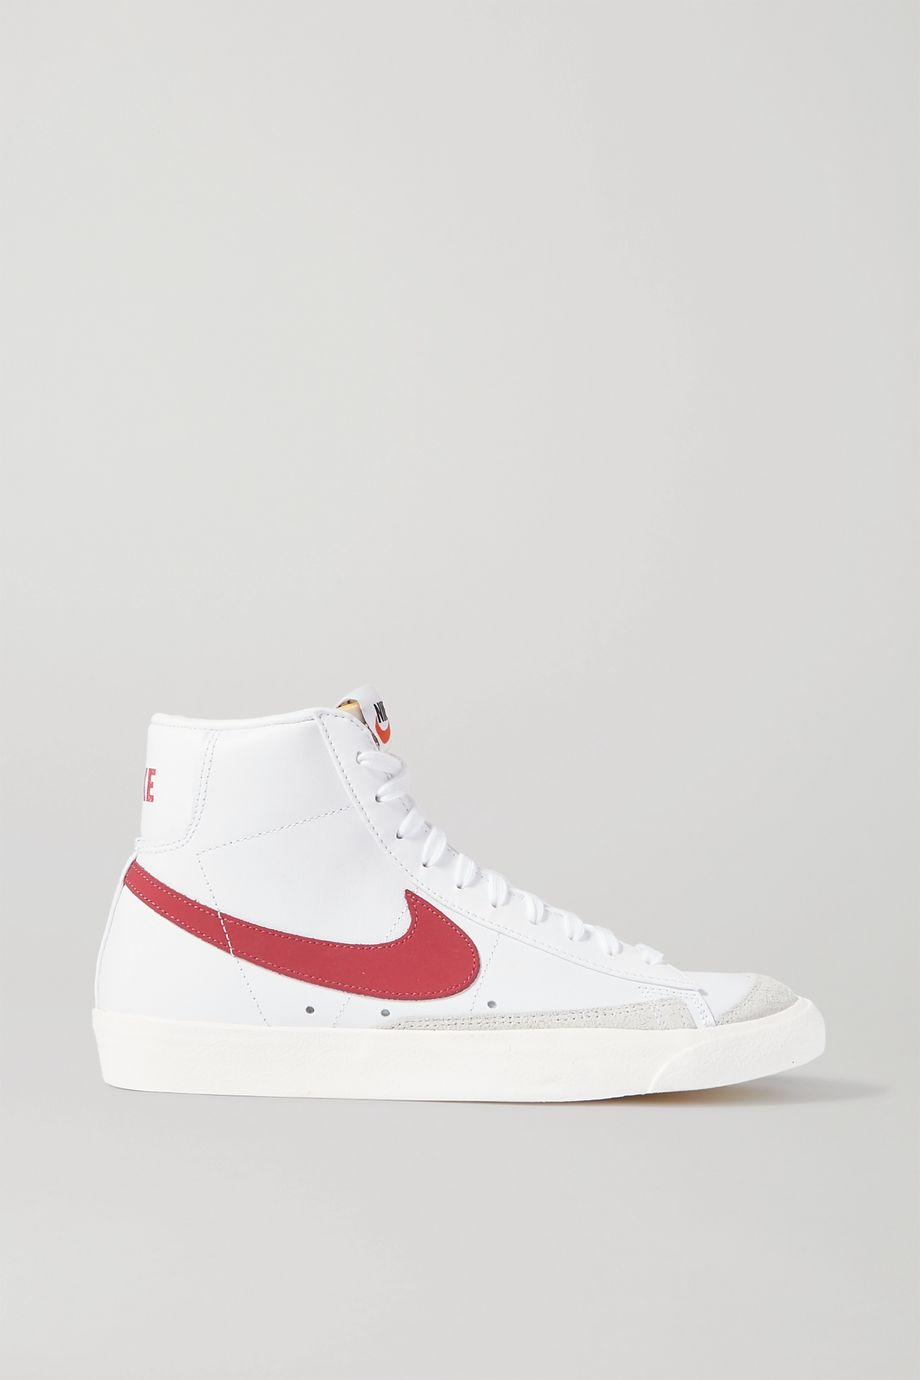 Nike Blazer Mid 77 Vintage suede-trimmed leather high-top sneakers